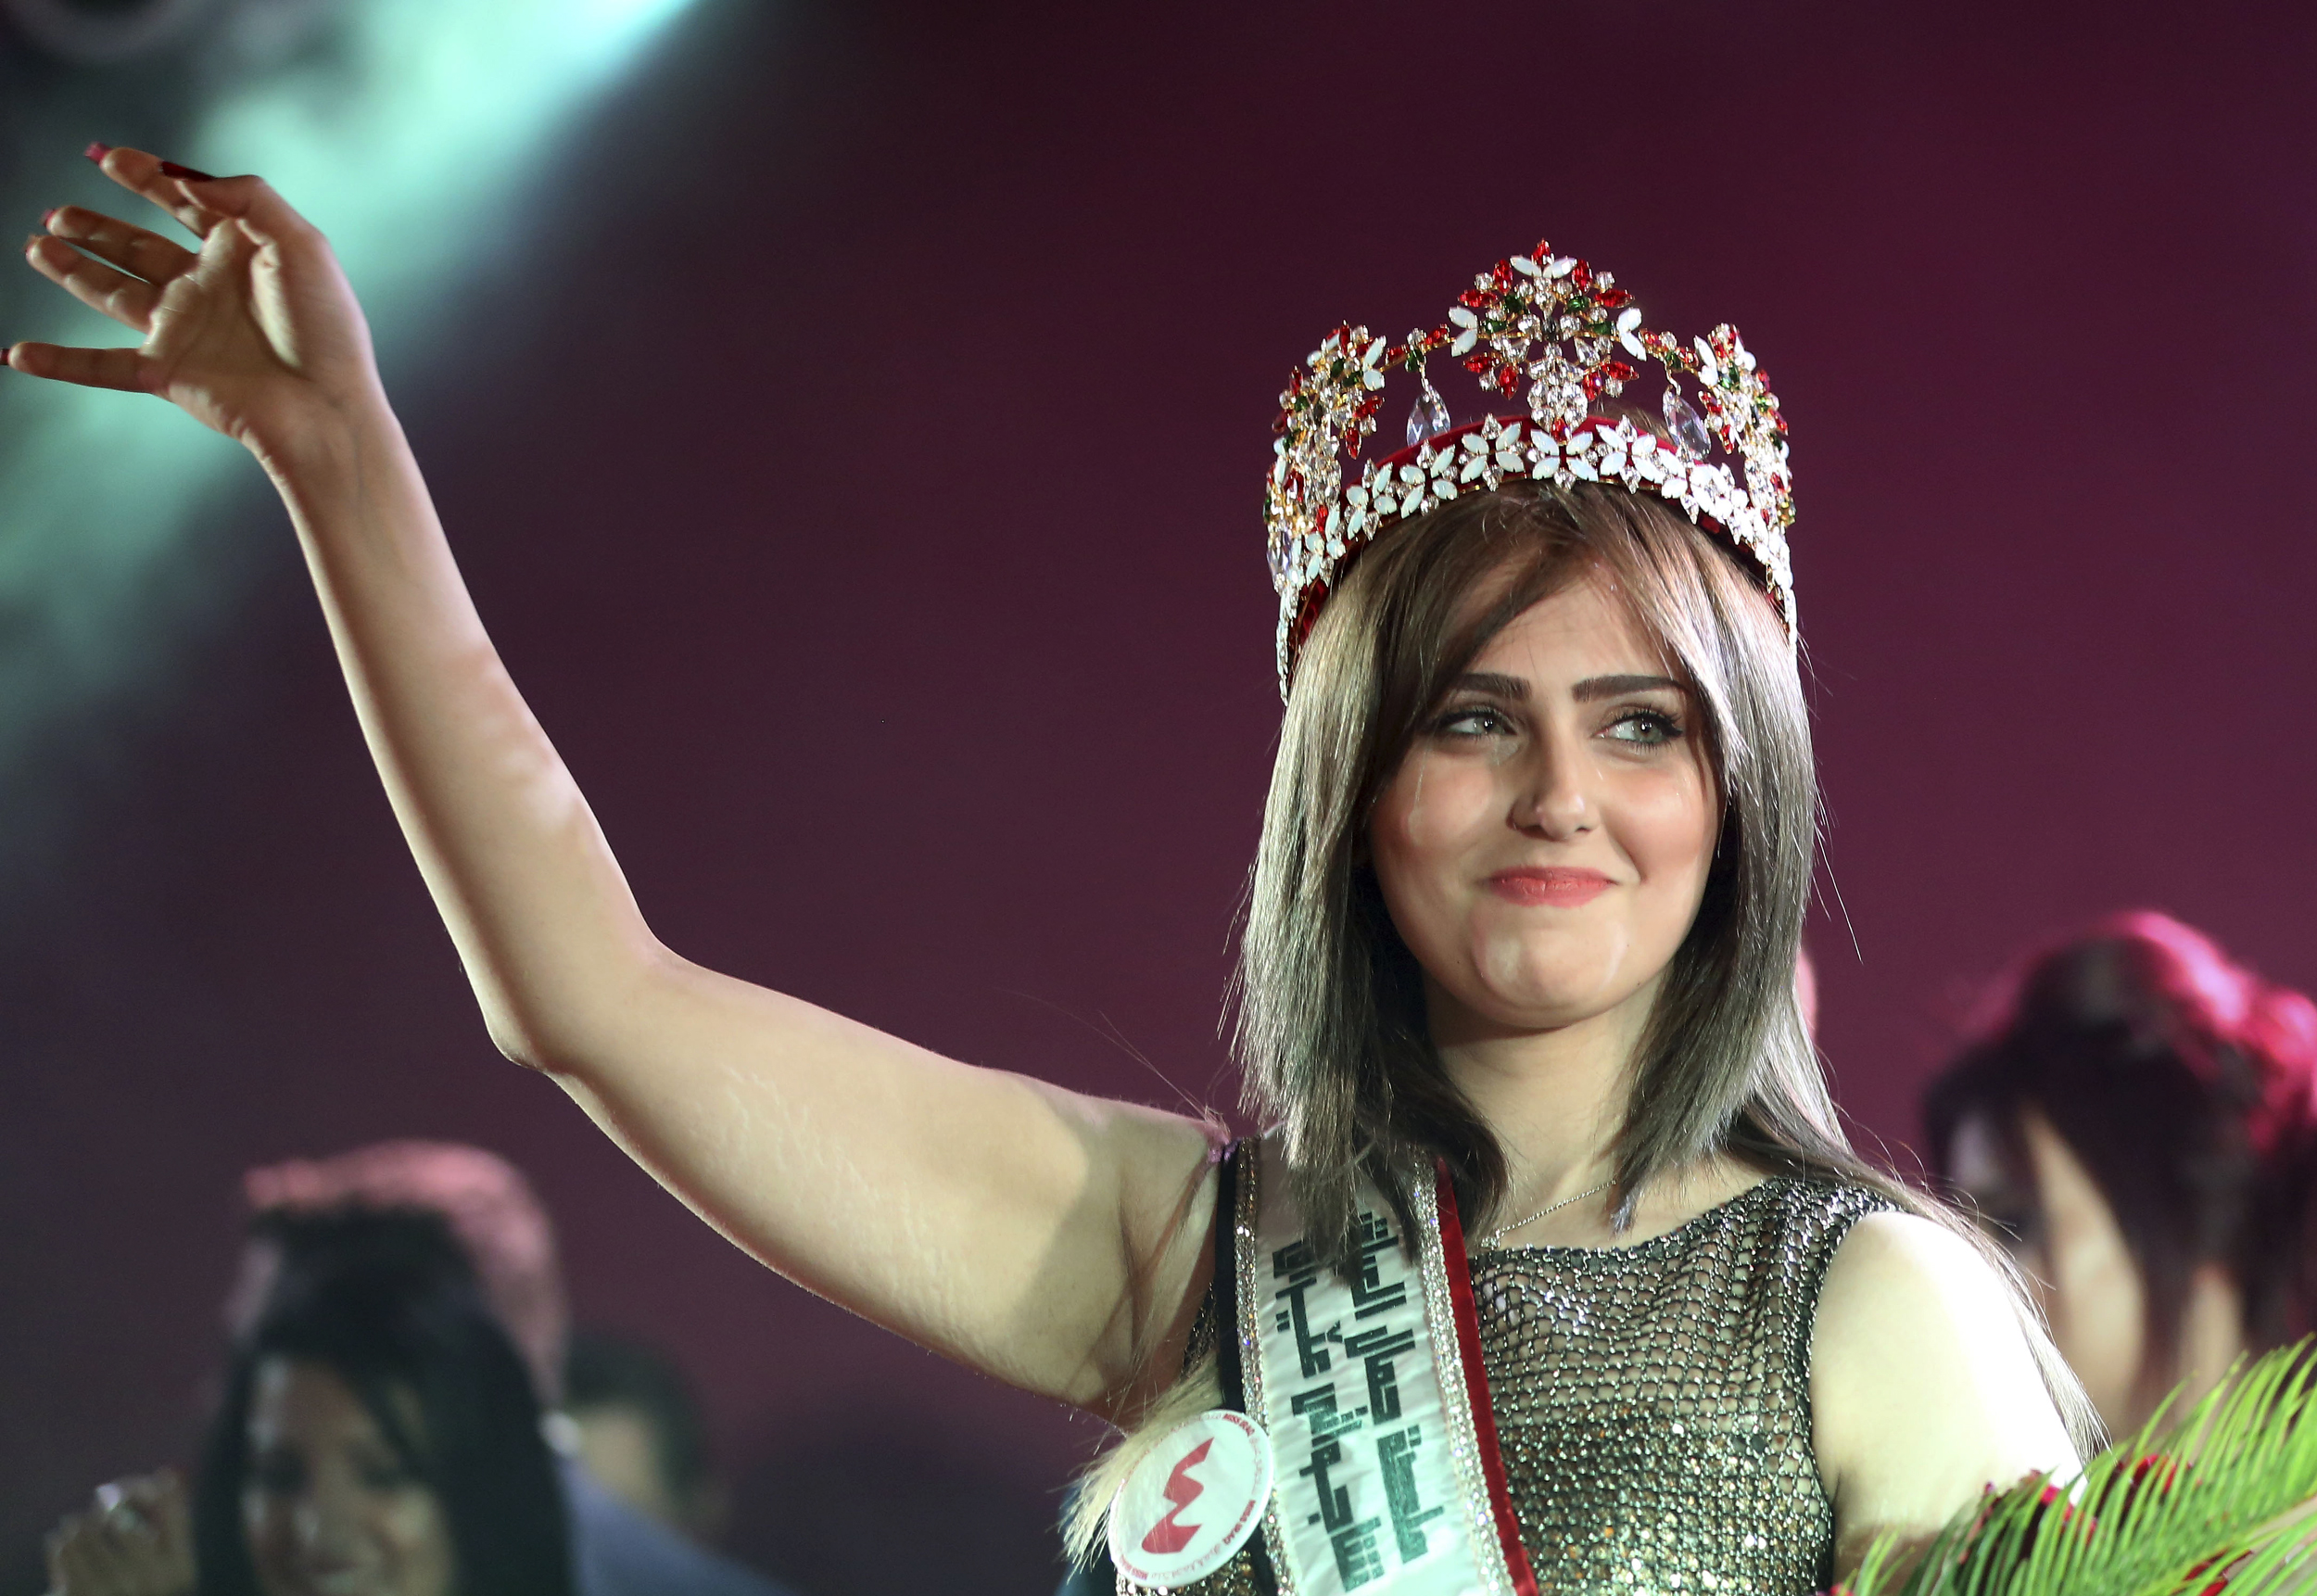 Shaima Qassim, celebrates after being crowned at the end of the 2015 Miss Iraq Final in Baghdad, Iraq on Dec. 19, 2015.